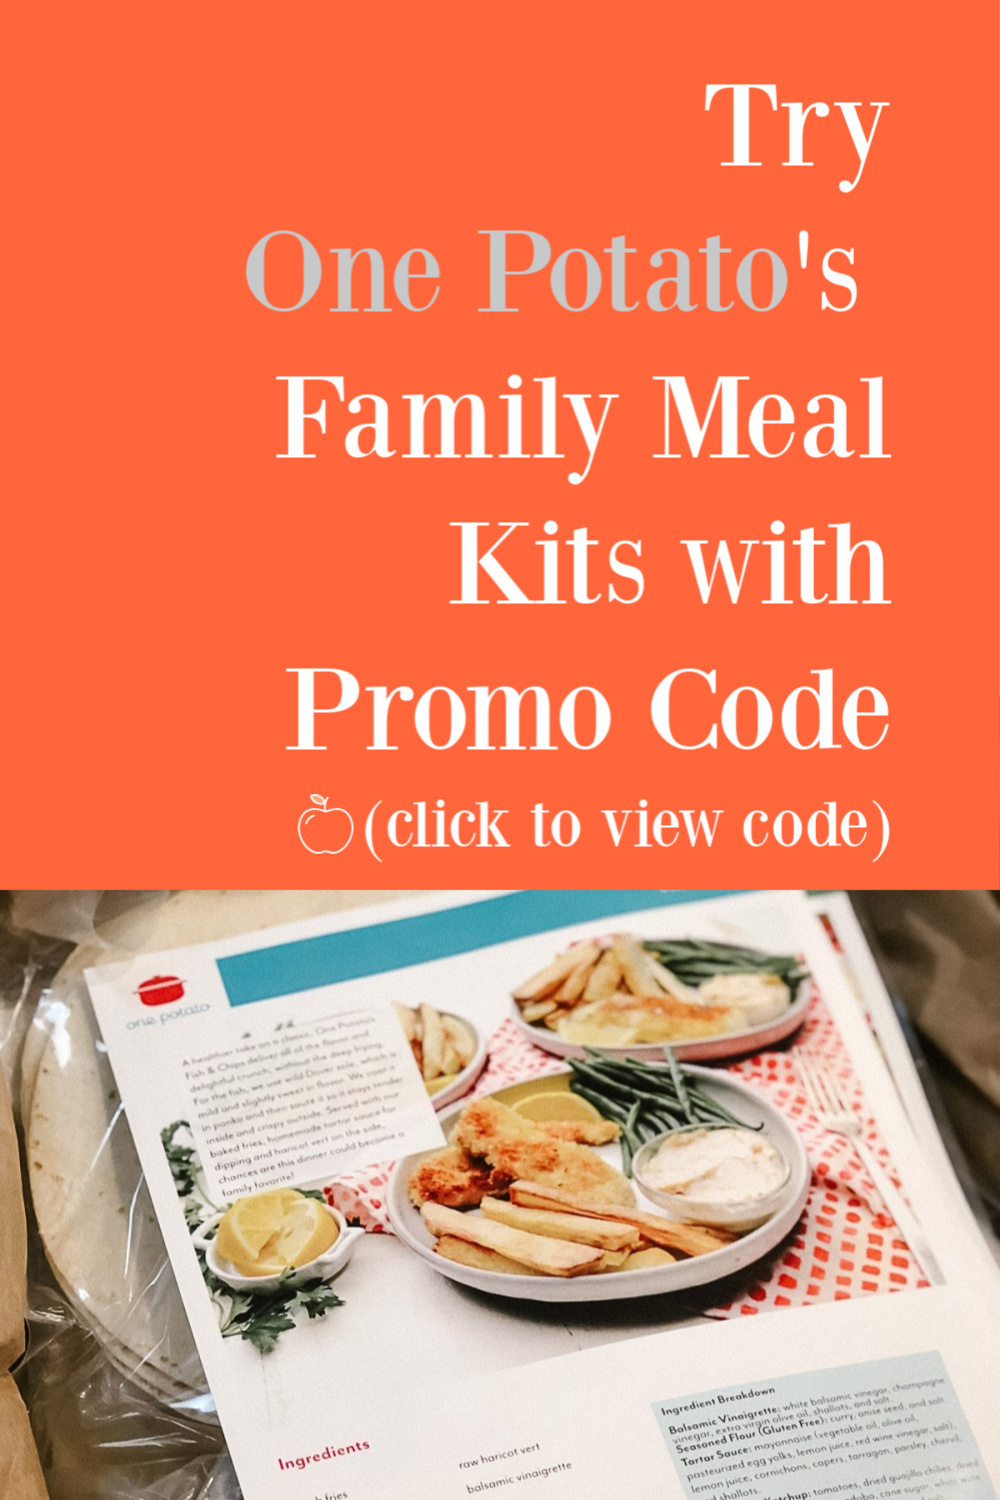 One Potato coupon code Graphic